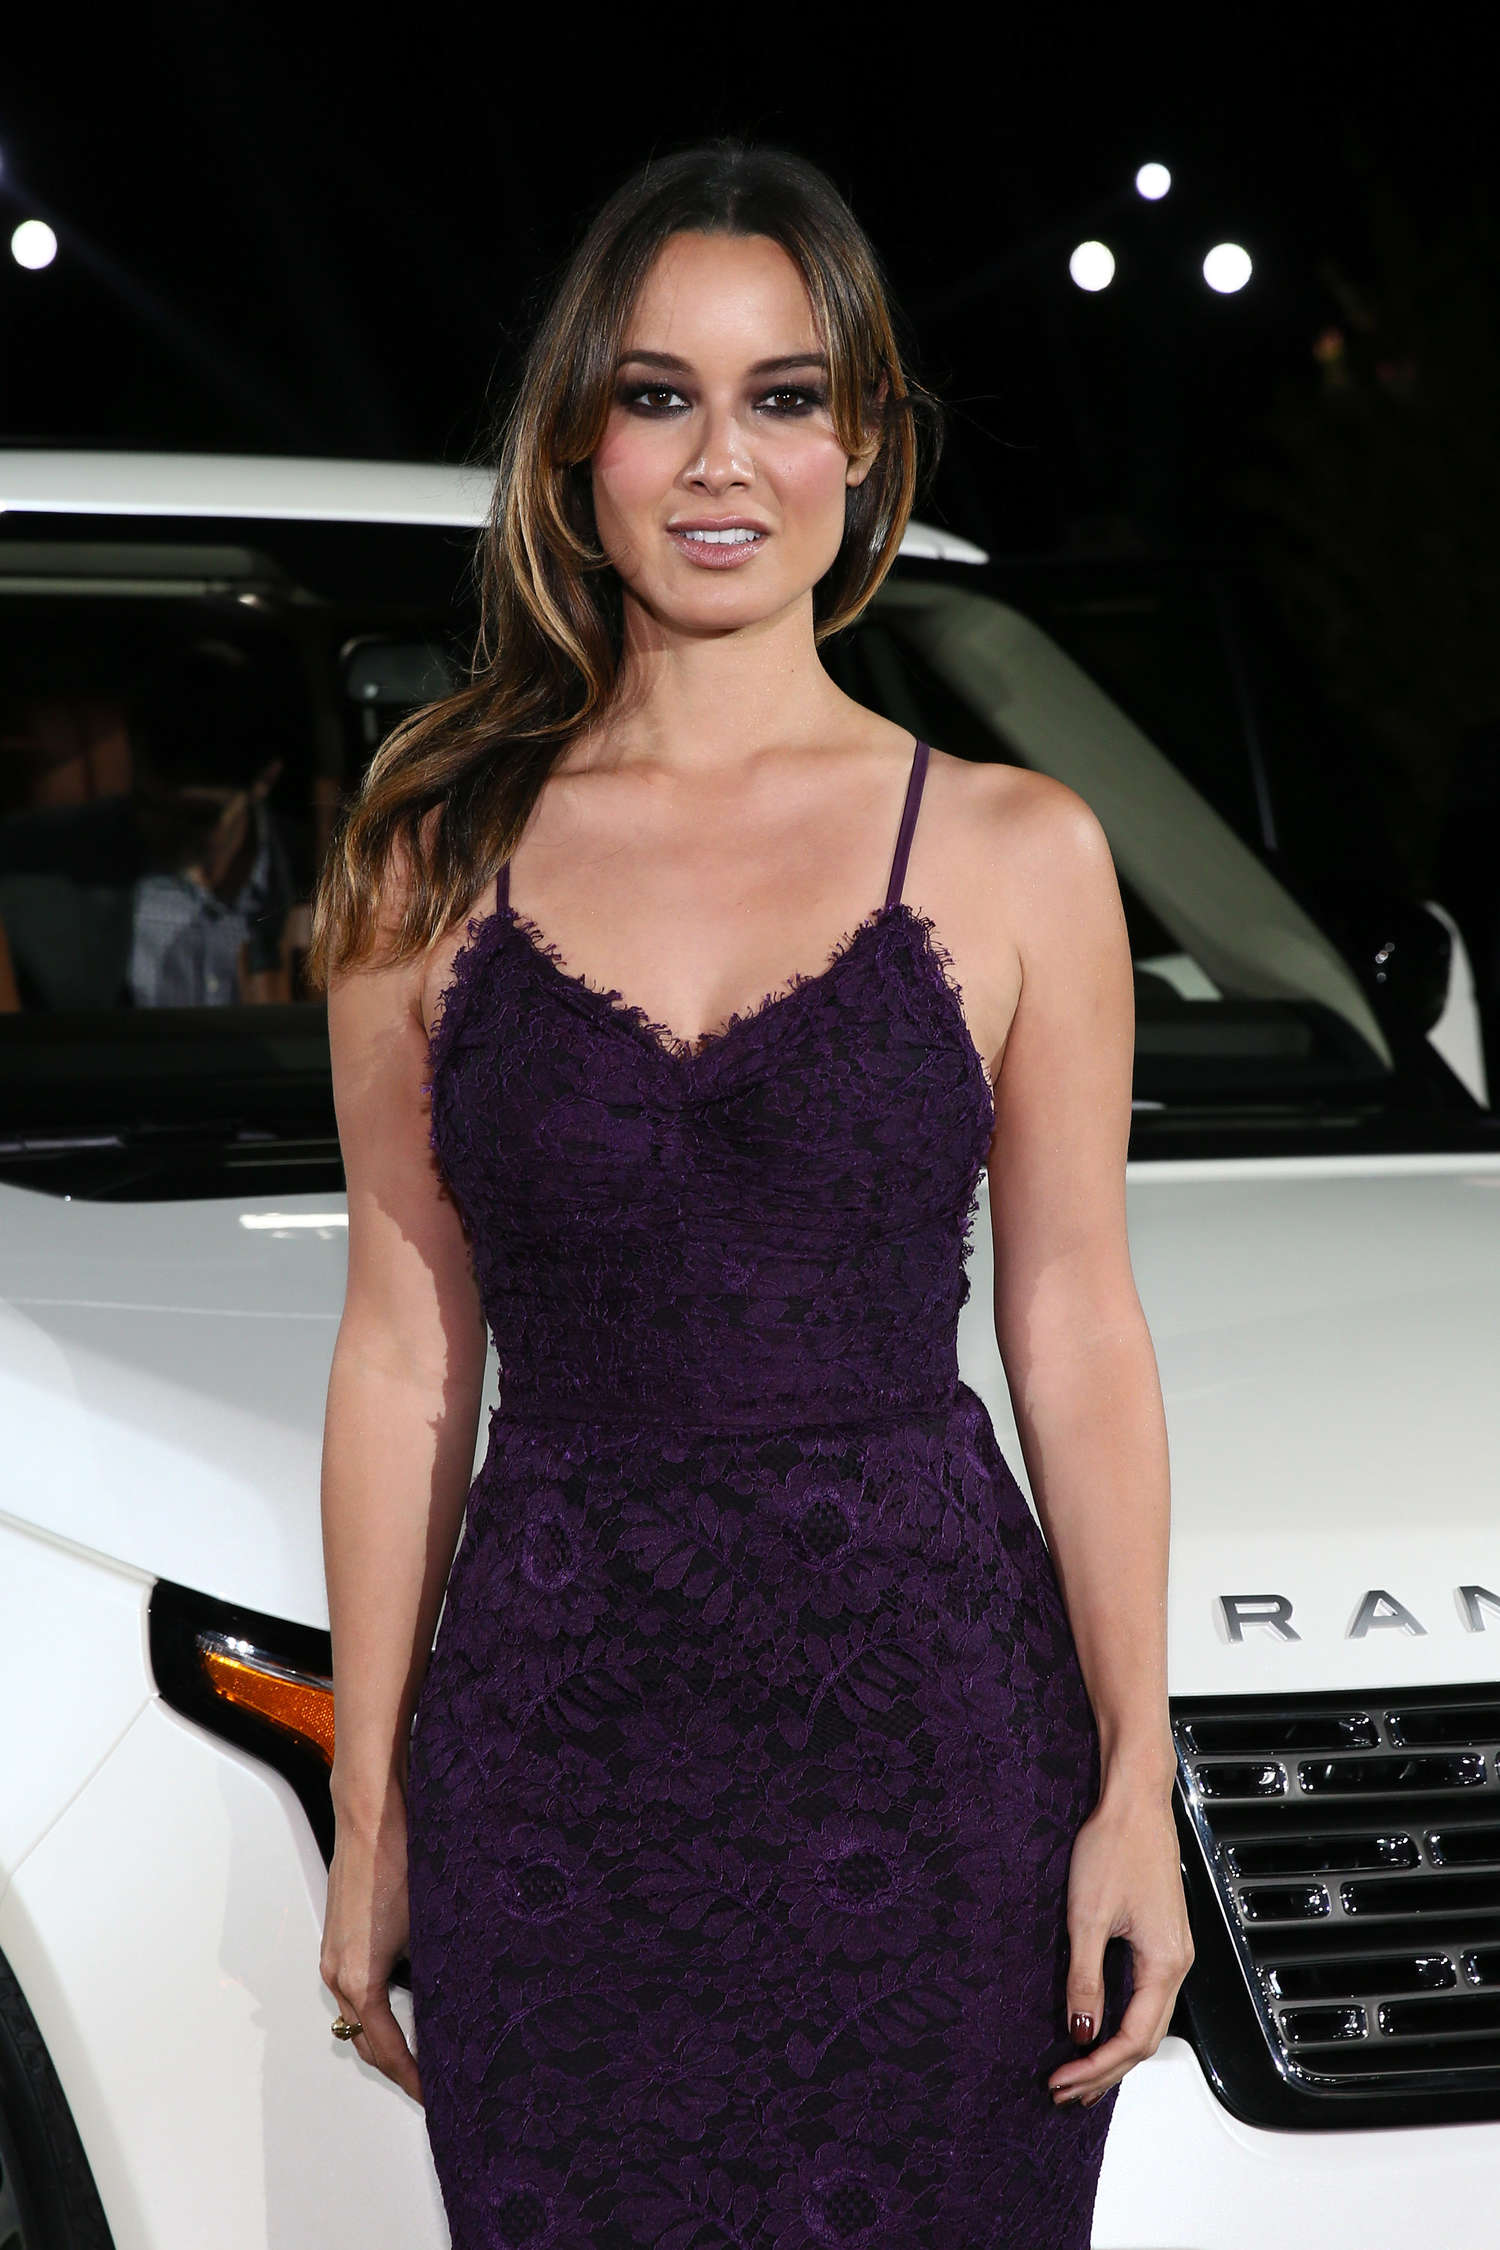 Berenice Marlohe Range Rover Reception in Beverly Hills